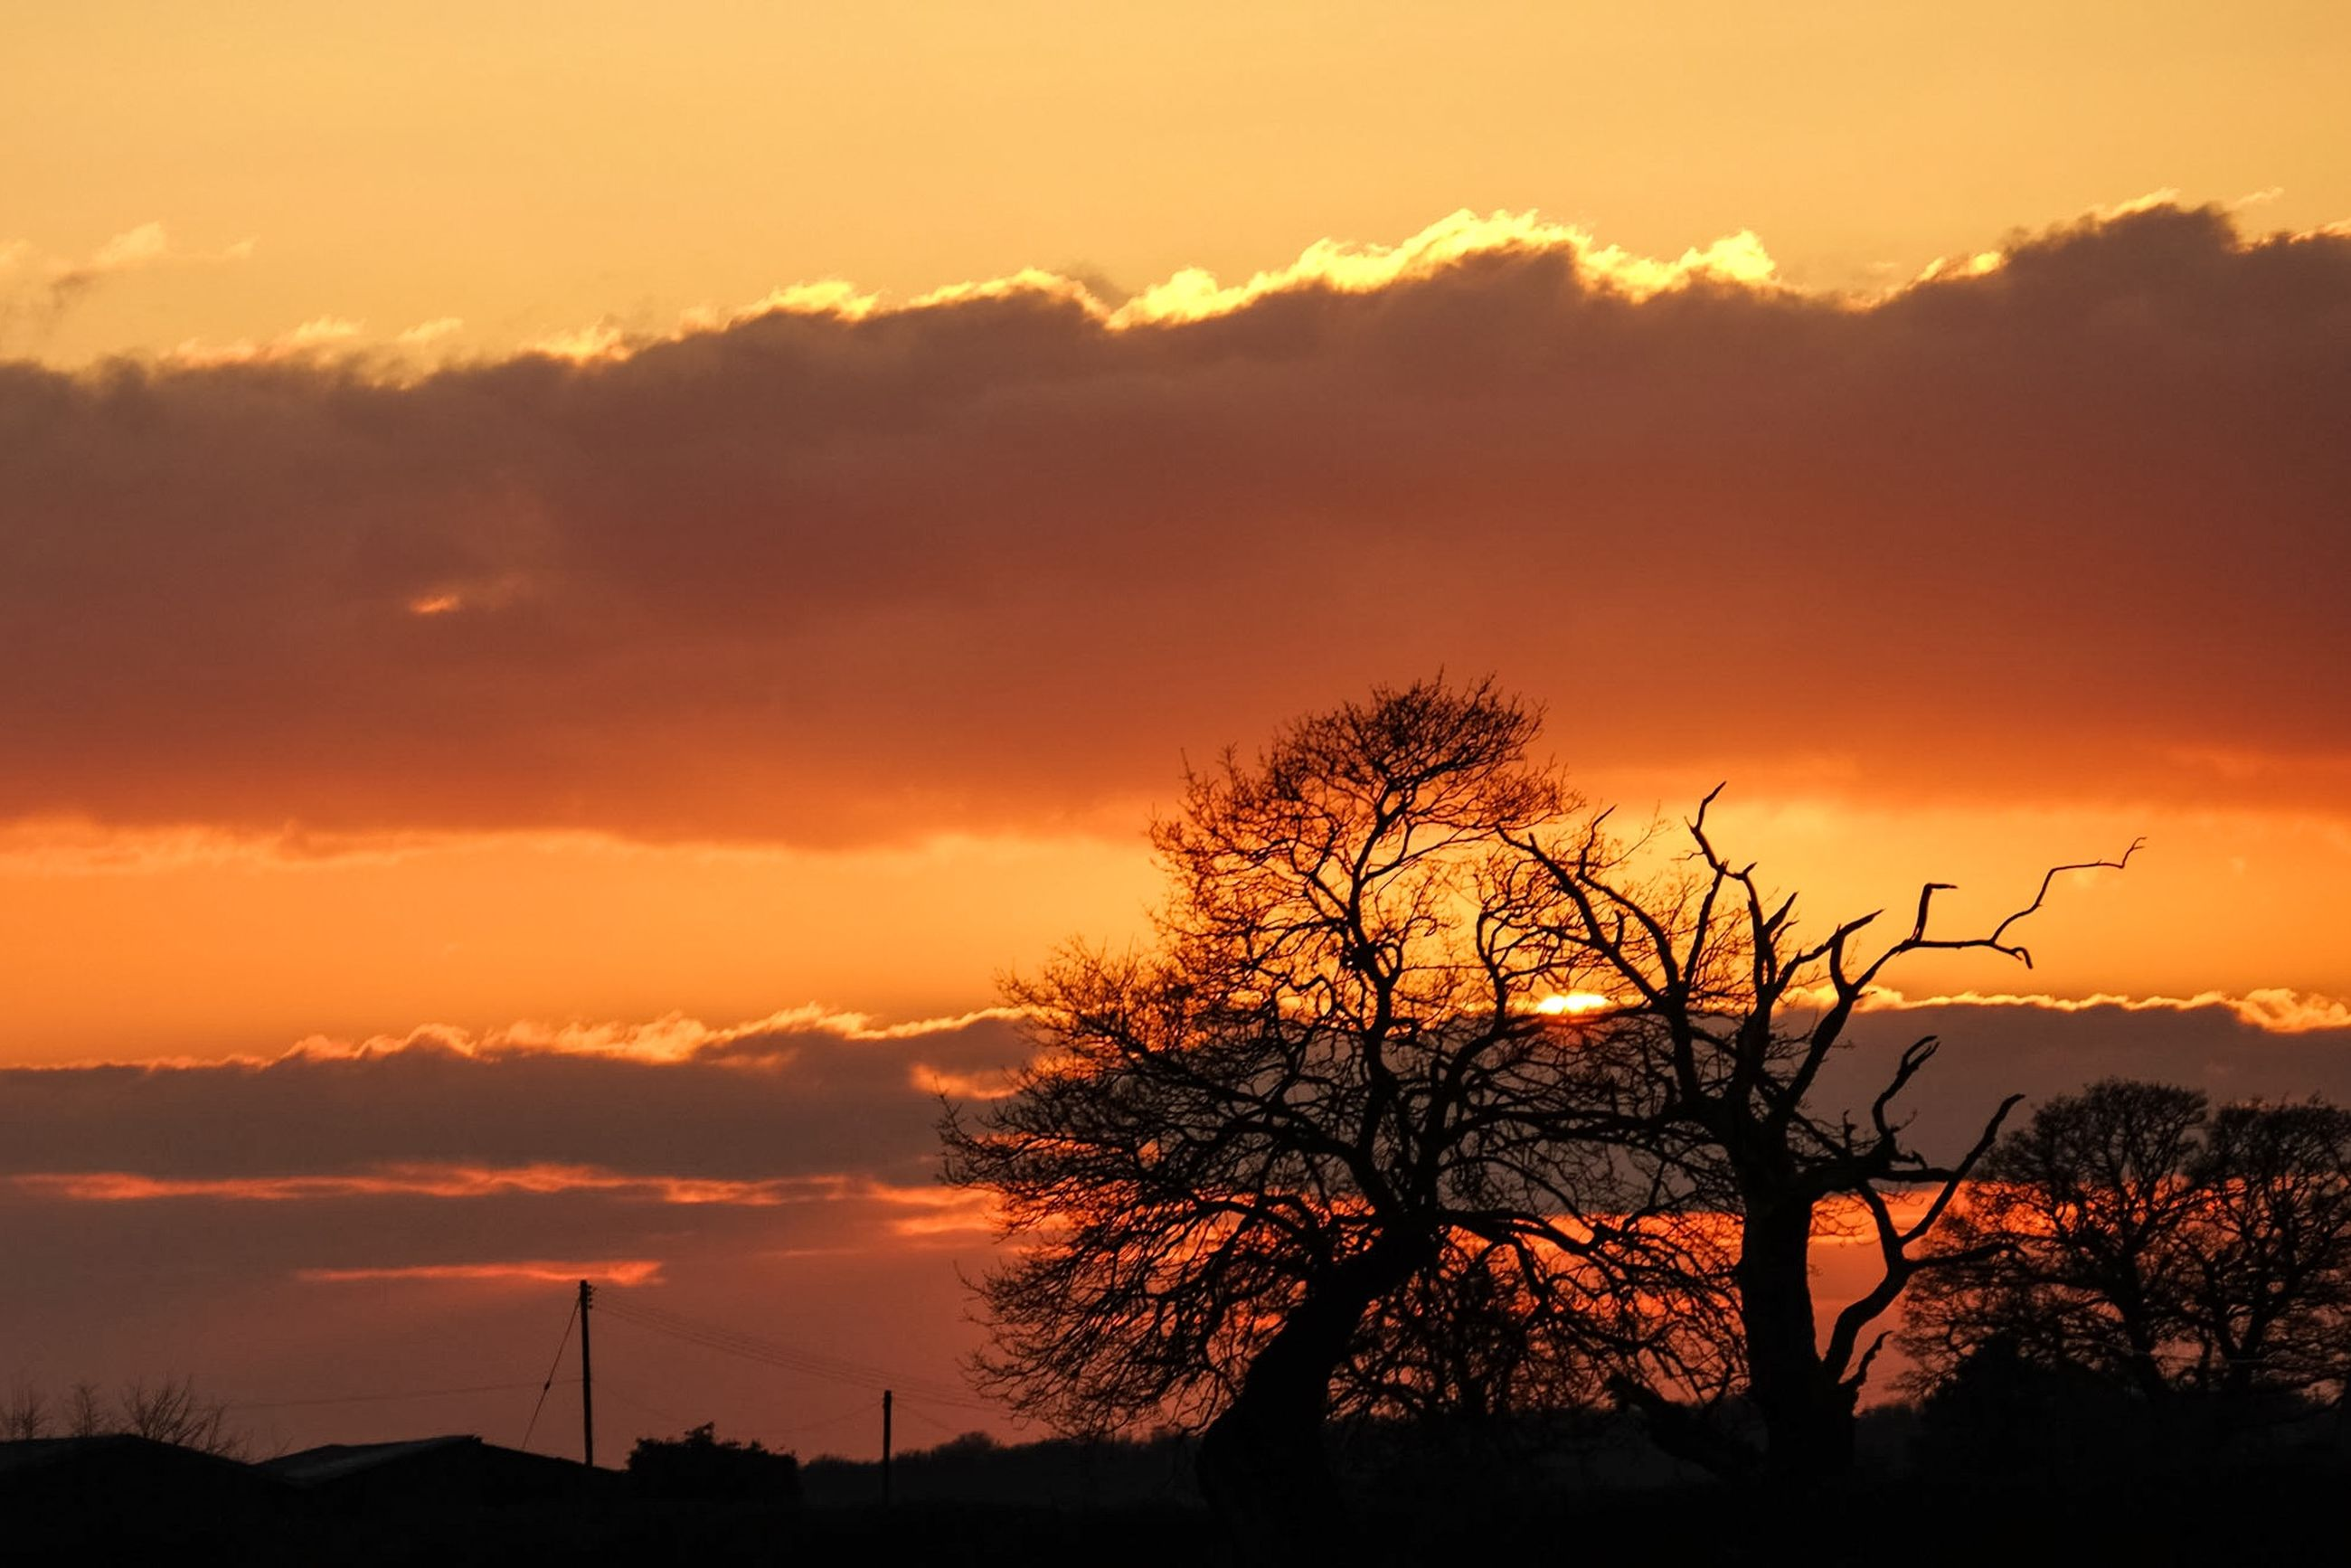 sunset, silhouette, orange color, sky, tree, beauty in nature, scenics, tranquility, tranquil scene, cloud - sky, bare tree, nature, low angle view, dramatic sky, idyllic, cloud, outdoors, no people, branch, landscape